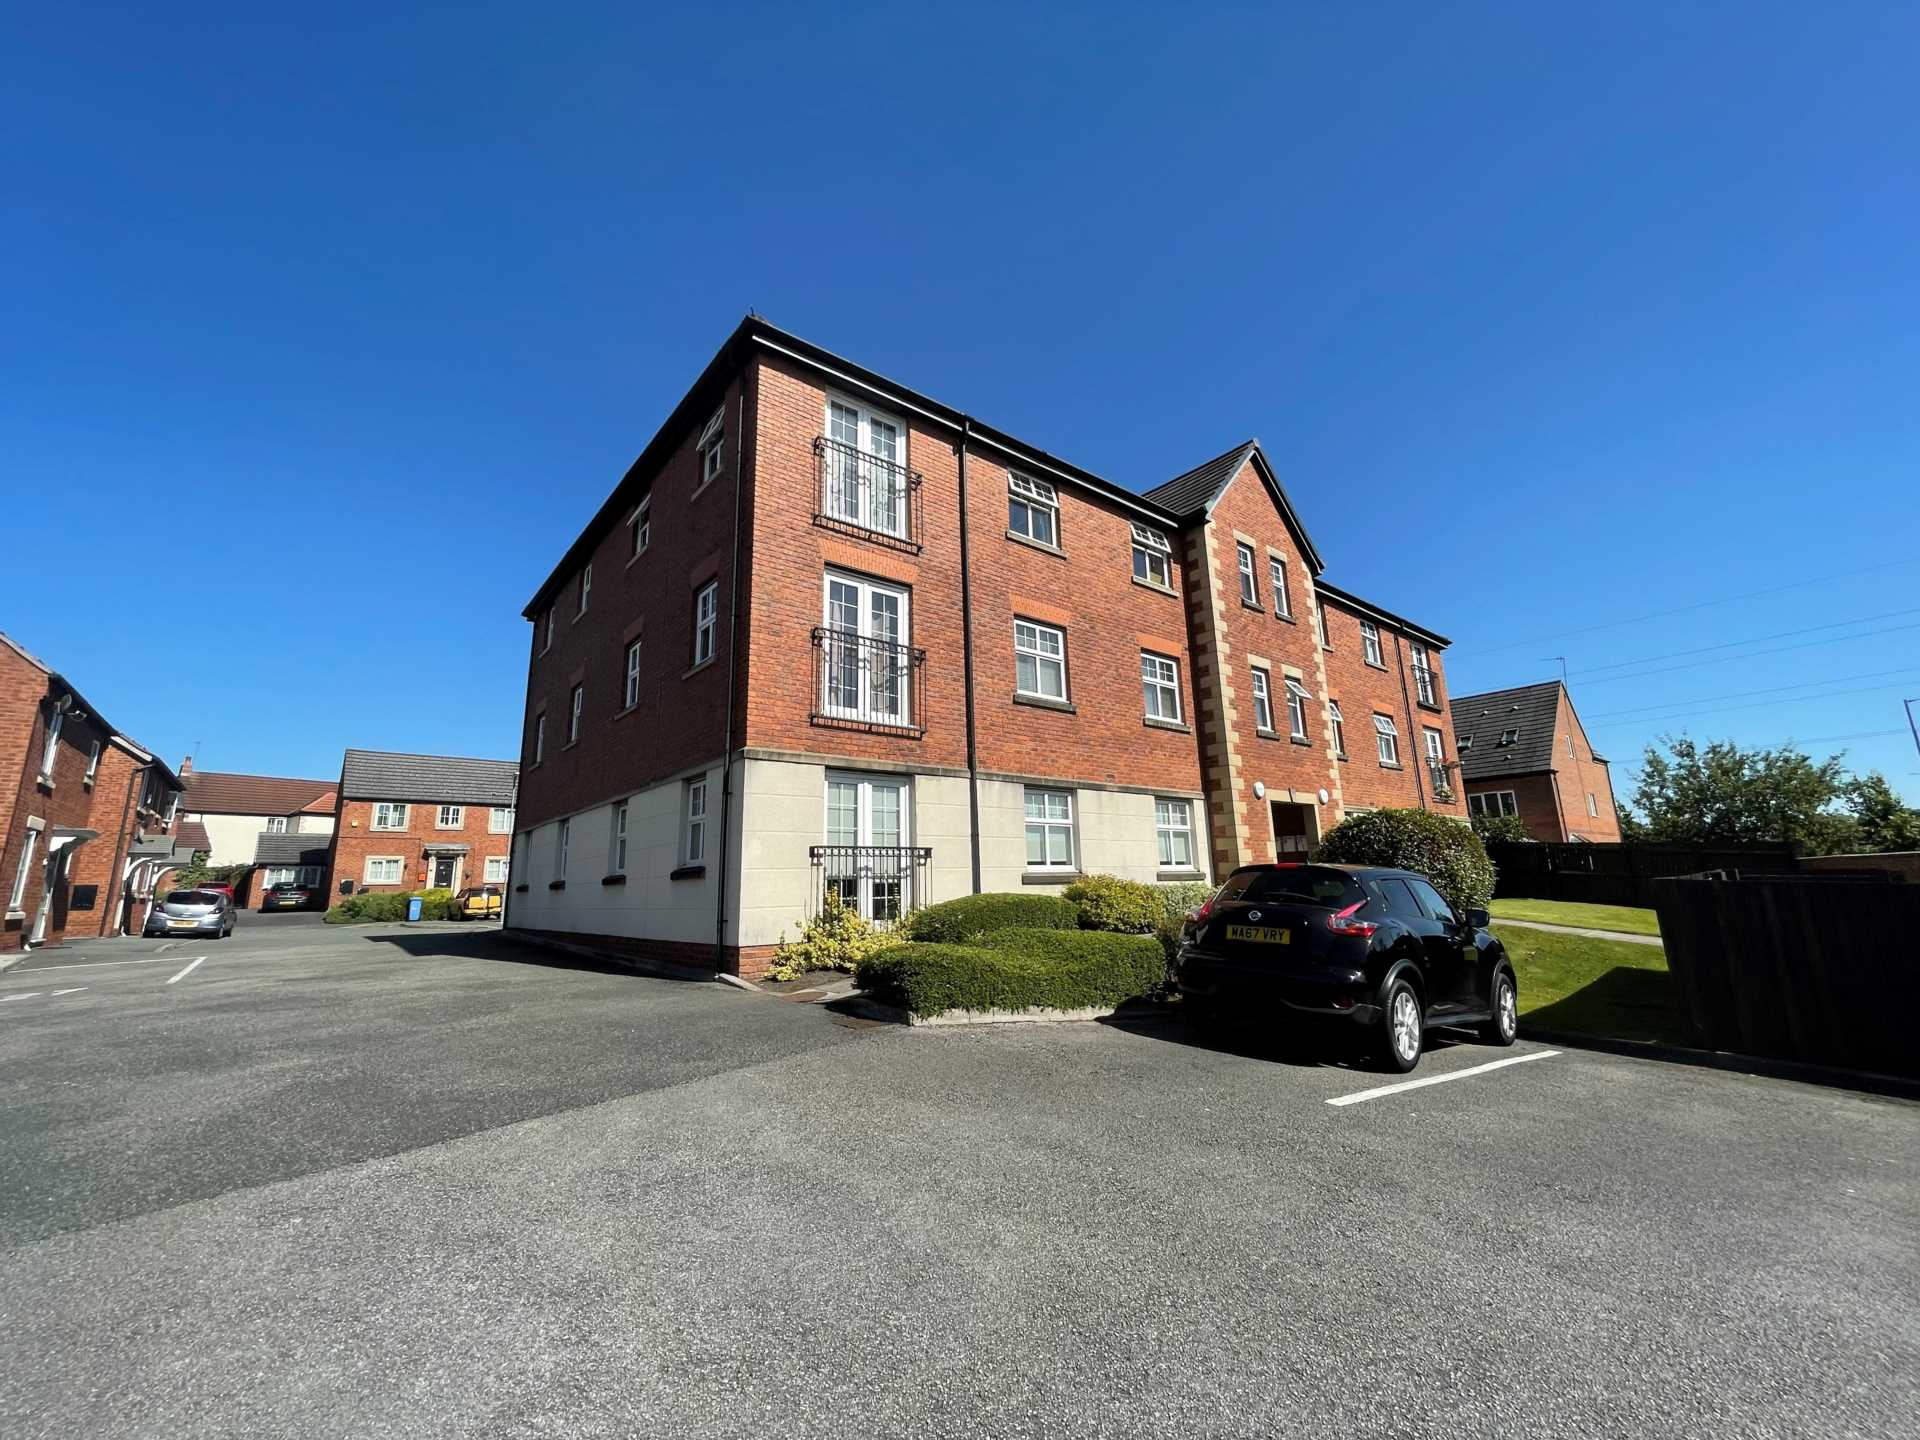 Clements Way, Littledale, Kirkby, Image 14